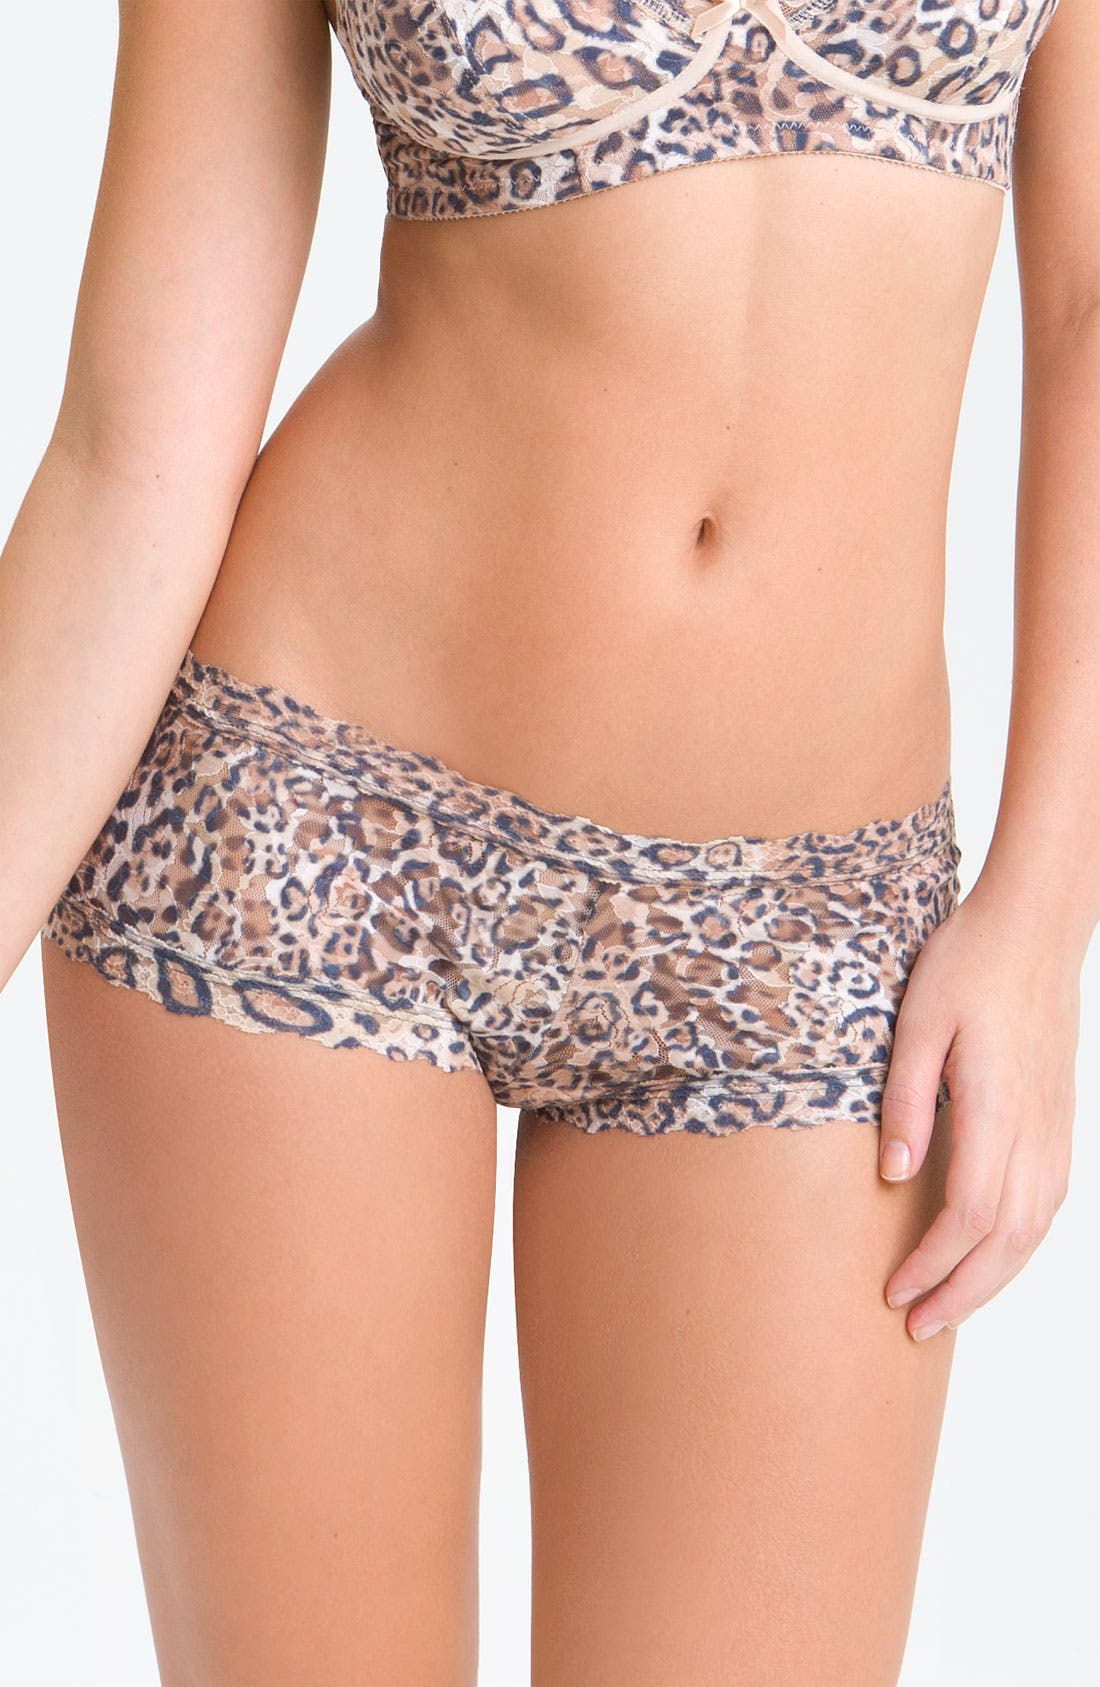 Alternate Image 1 Selected - Hanky Panky 'Leopard' Boyshorts